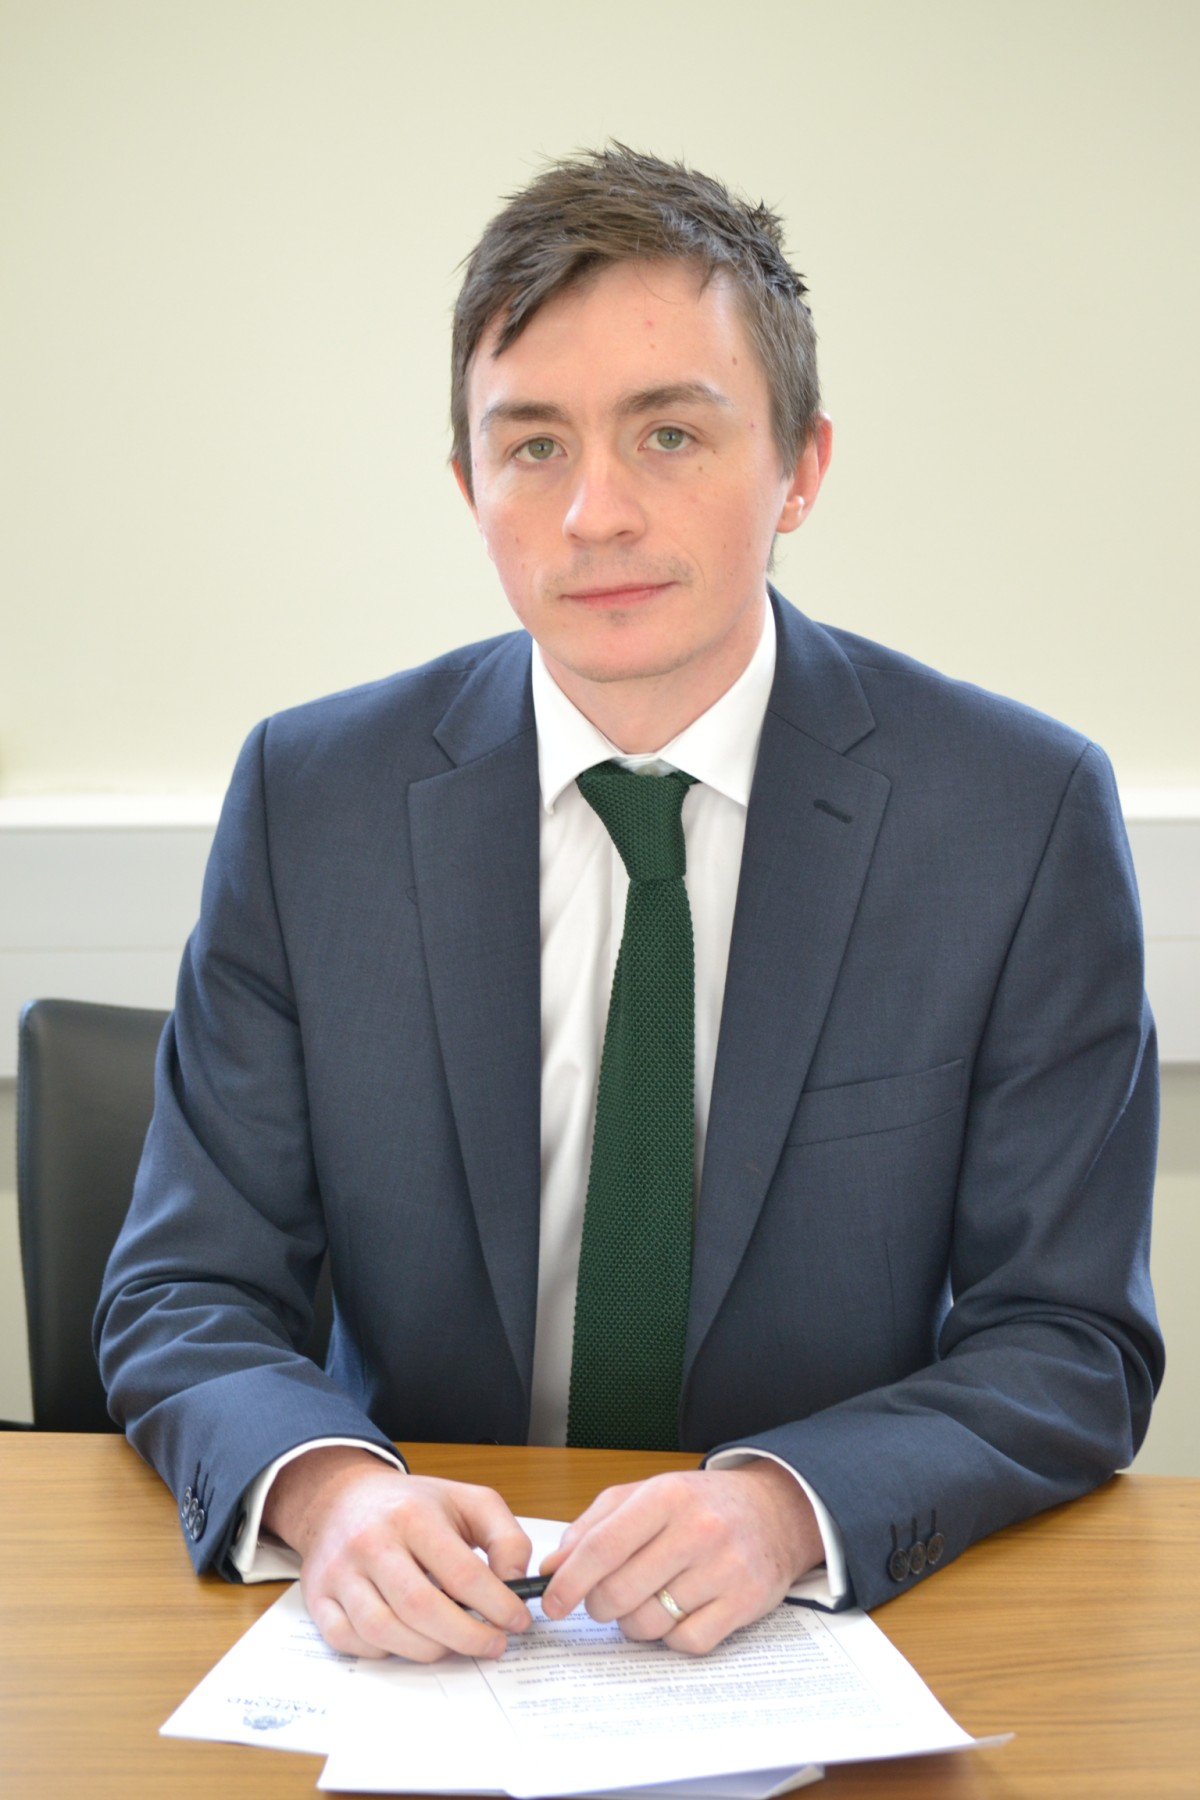 Council leader Sean Anstee